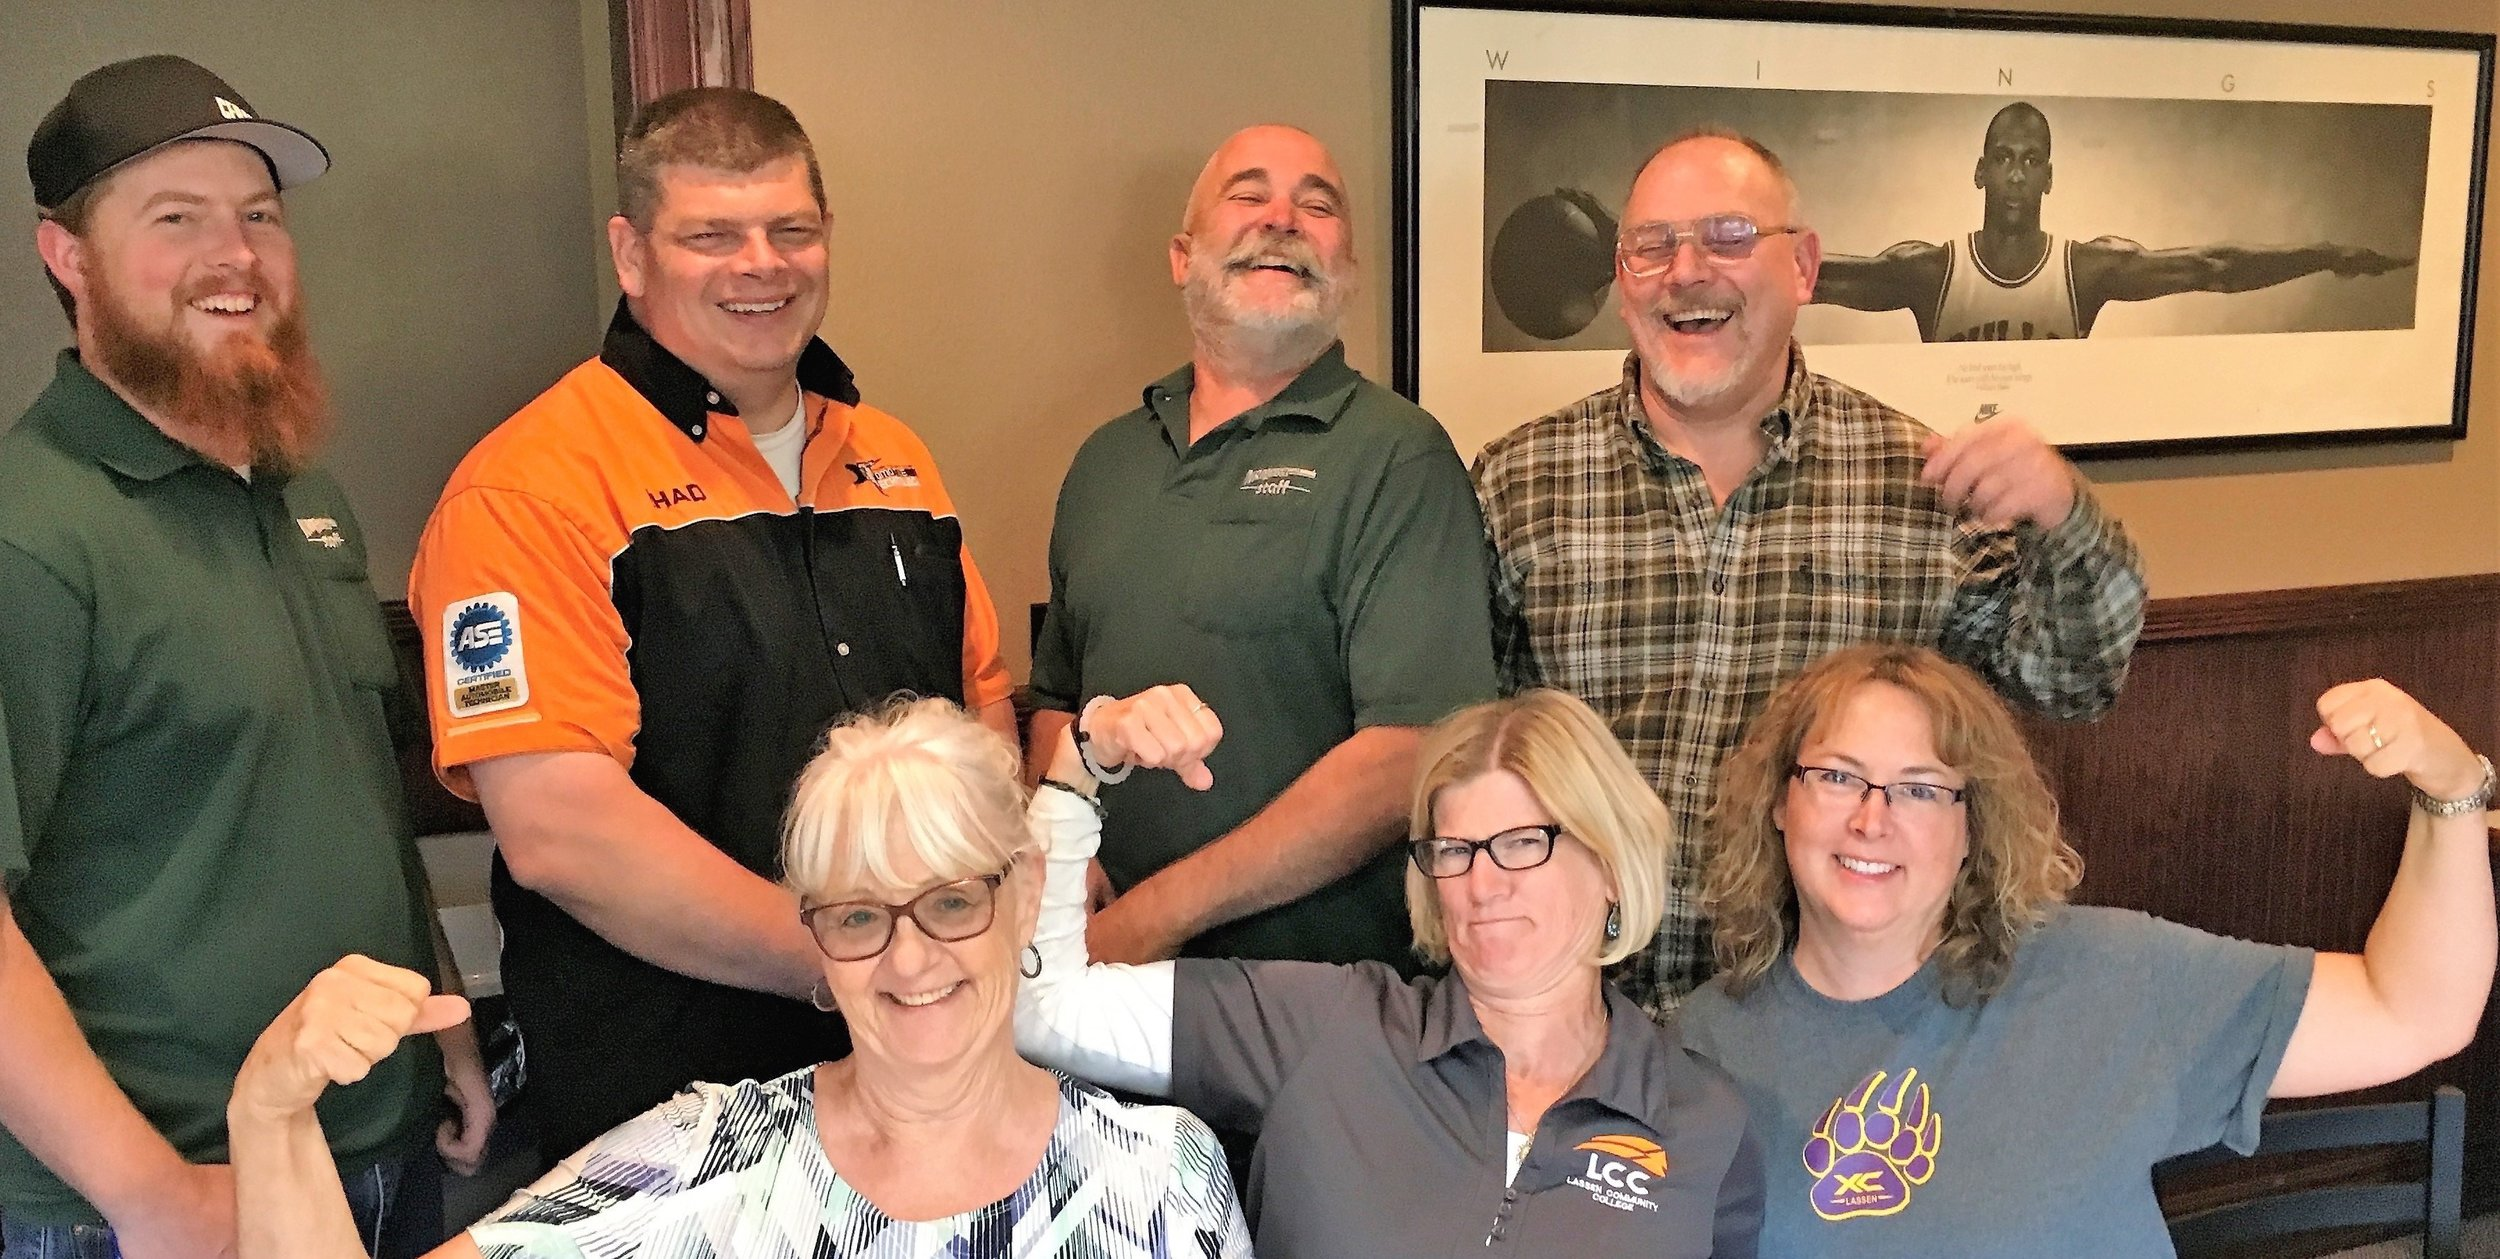 Who We Are - LCFA Board members from upper left Buck Bauer (Secretary Treasure), Chad Lewis (Vice President), John Martin (Faculty Negotiator-Full Time), and Robert Schofield (Chief Negotiator). Front from left Kittie Edson (Faculty Negotiator-Part-Time/Adjunct), Carrie Nyman (President), and Lisa Gardiner (Member At-Large).